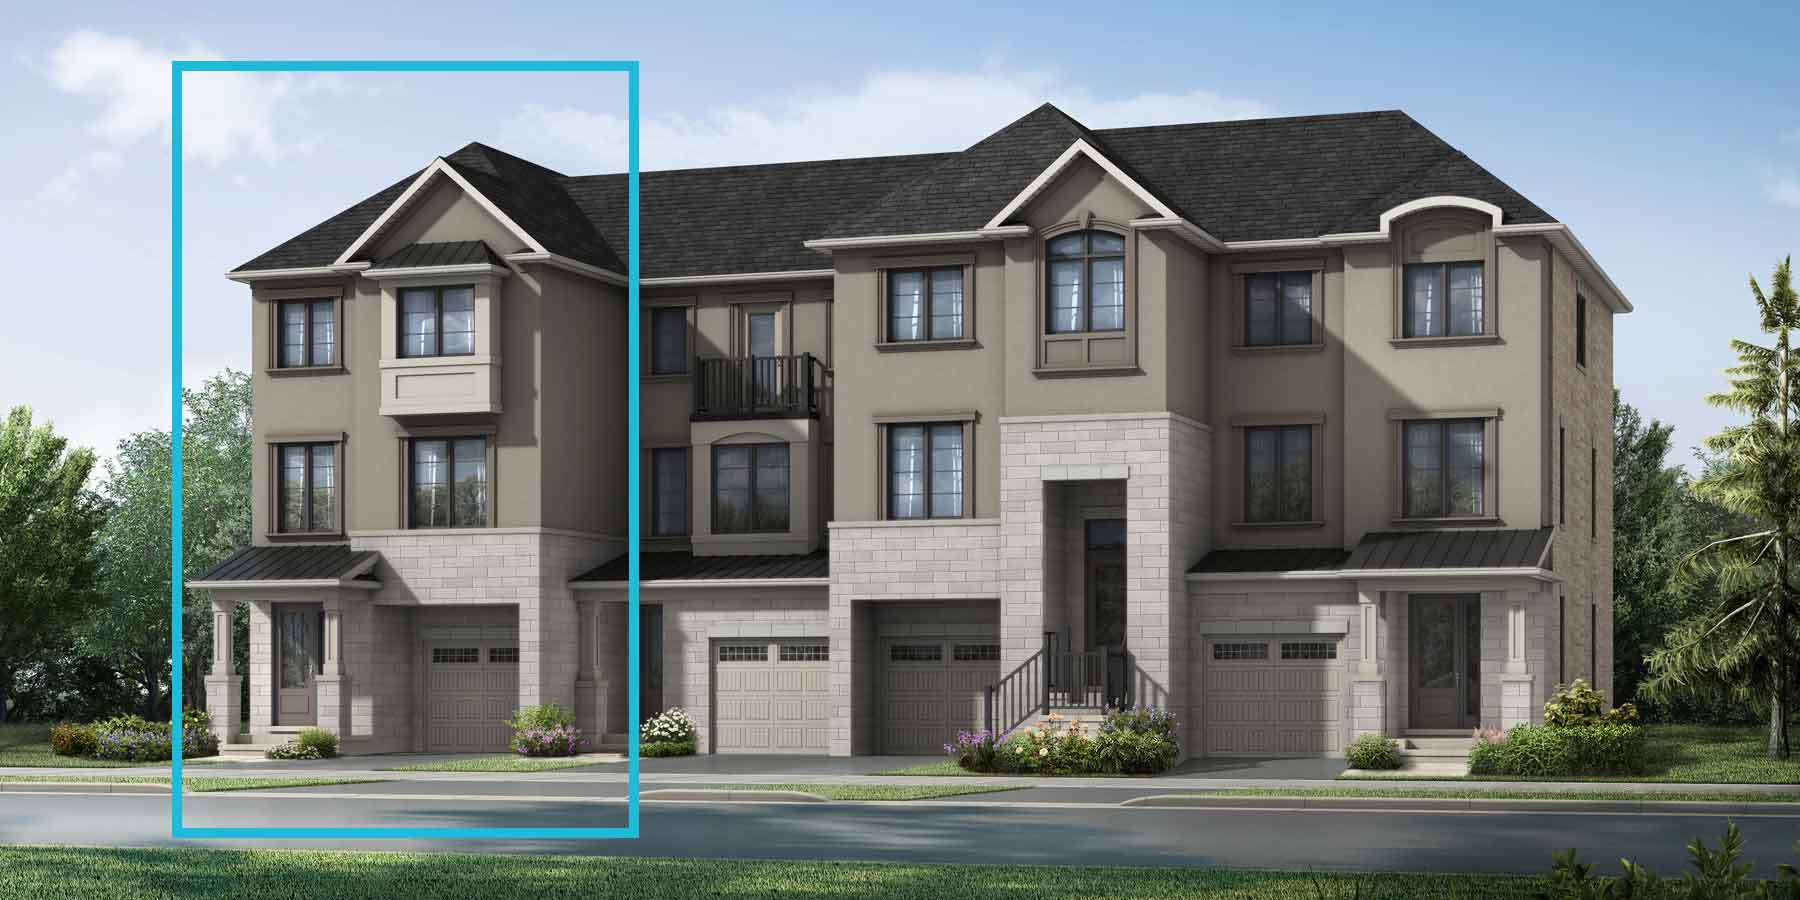 Uxbridge End Plan TownHomes at The Nine in Mississauga Ontario by Mattamy Homes